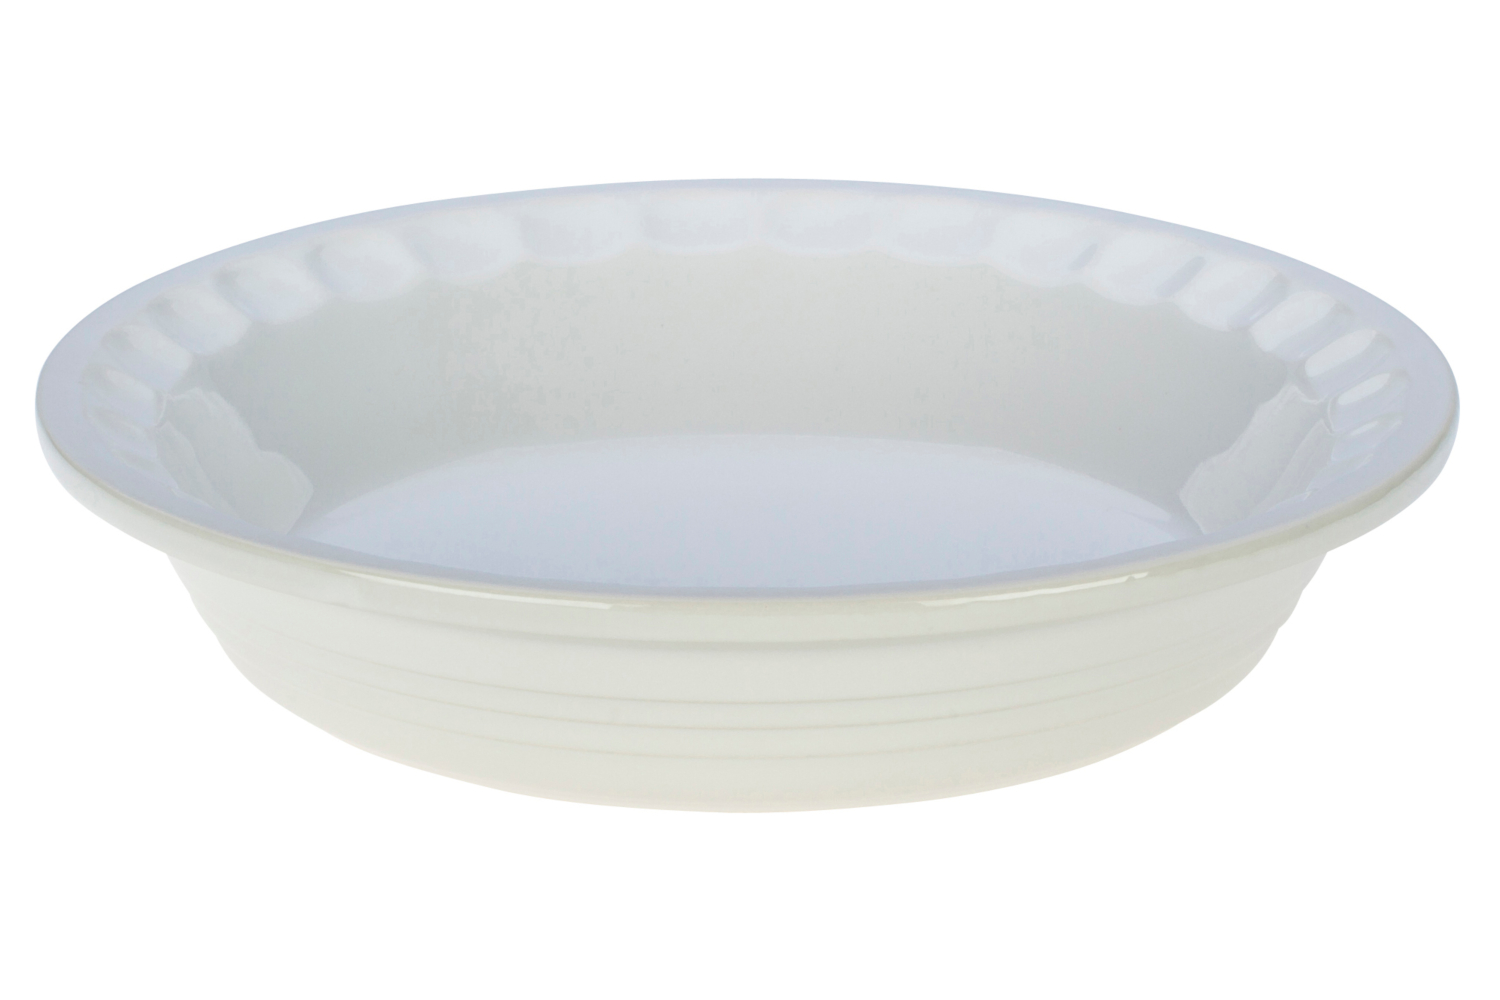 Le Creuset Heritage Stoneware 9 inch Pie Dish - White